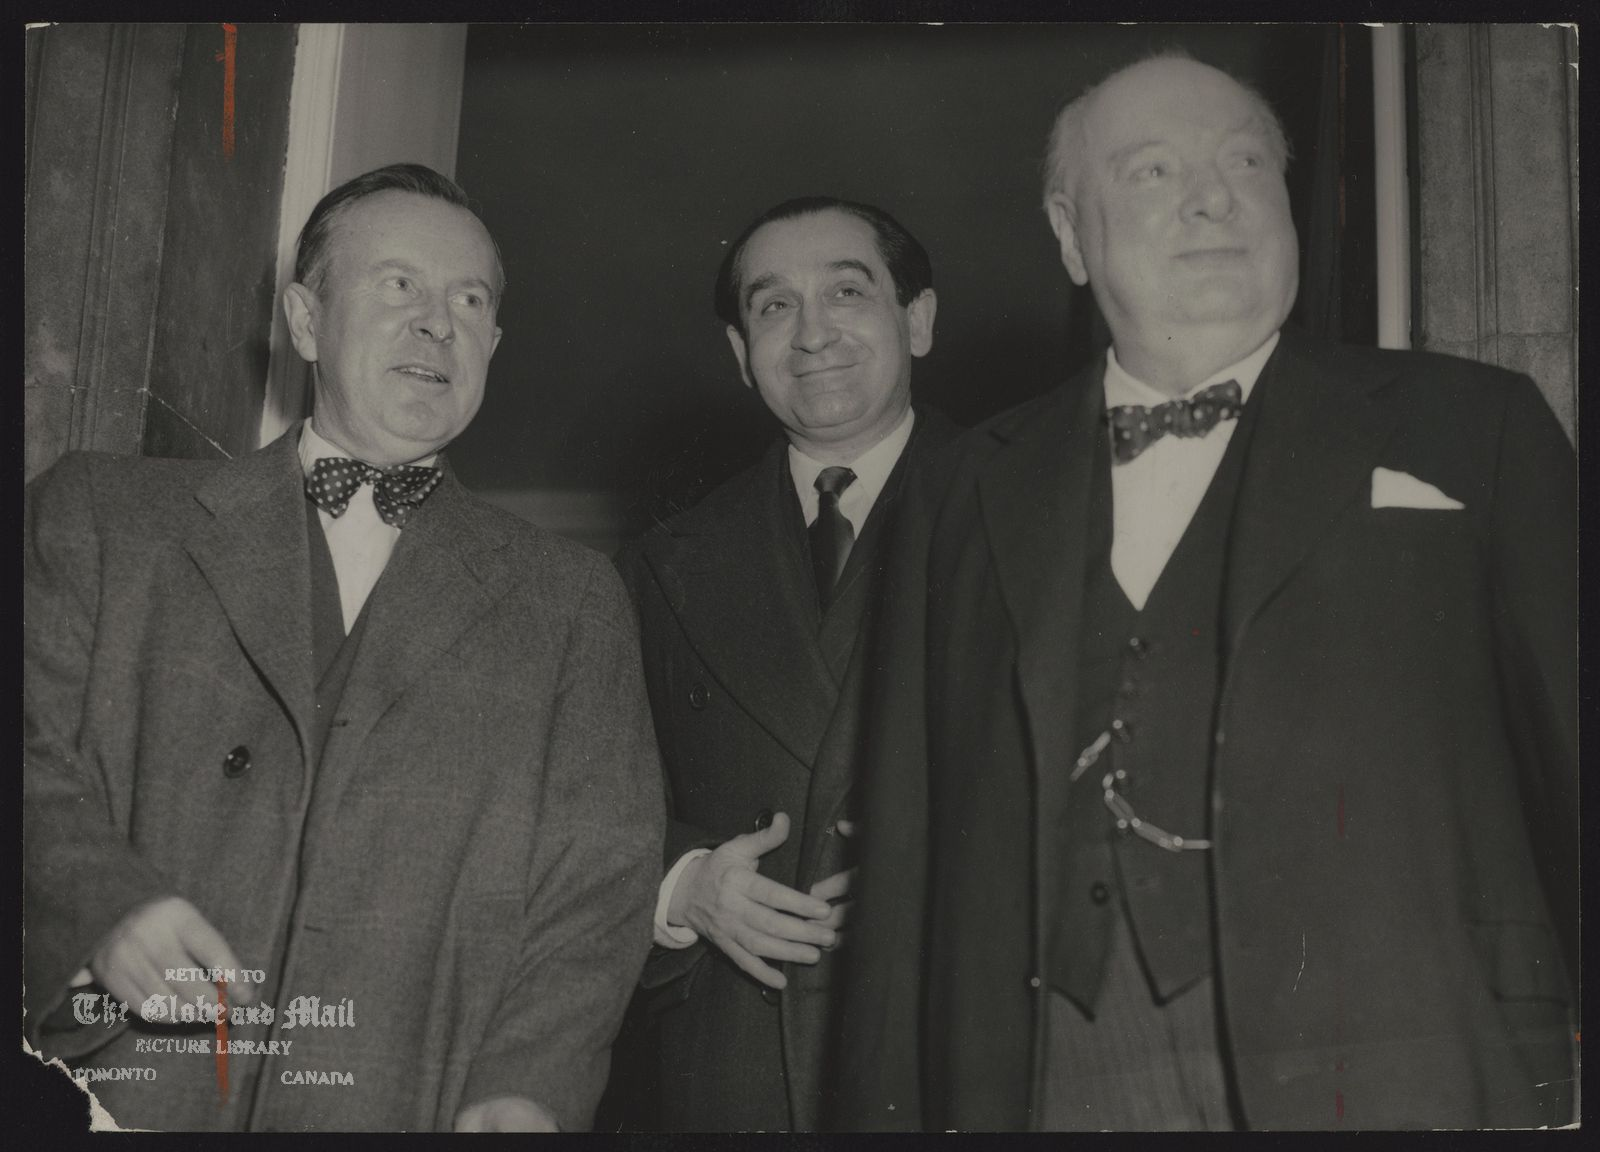 LESTER B. PEARSON (With famous people) Lester B. Pearson with Mendes France and Sir Winston Churchill. [In London for a meeting, Pearson lunches with Pierre Mendes-France and Sir Winston Churchill.]